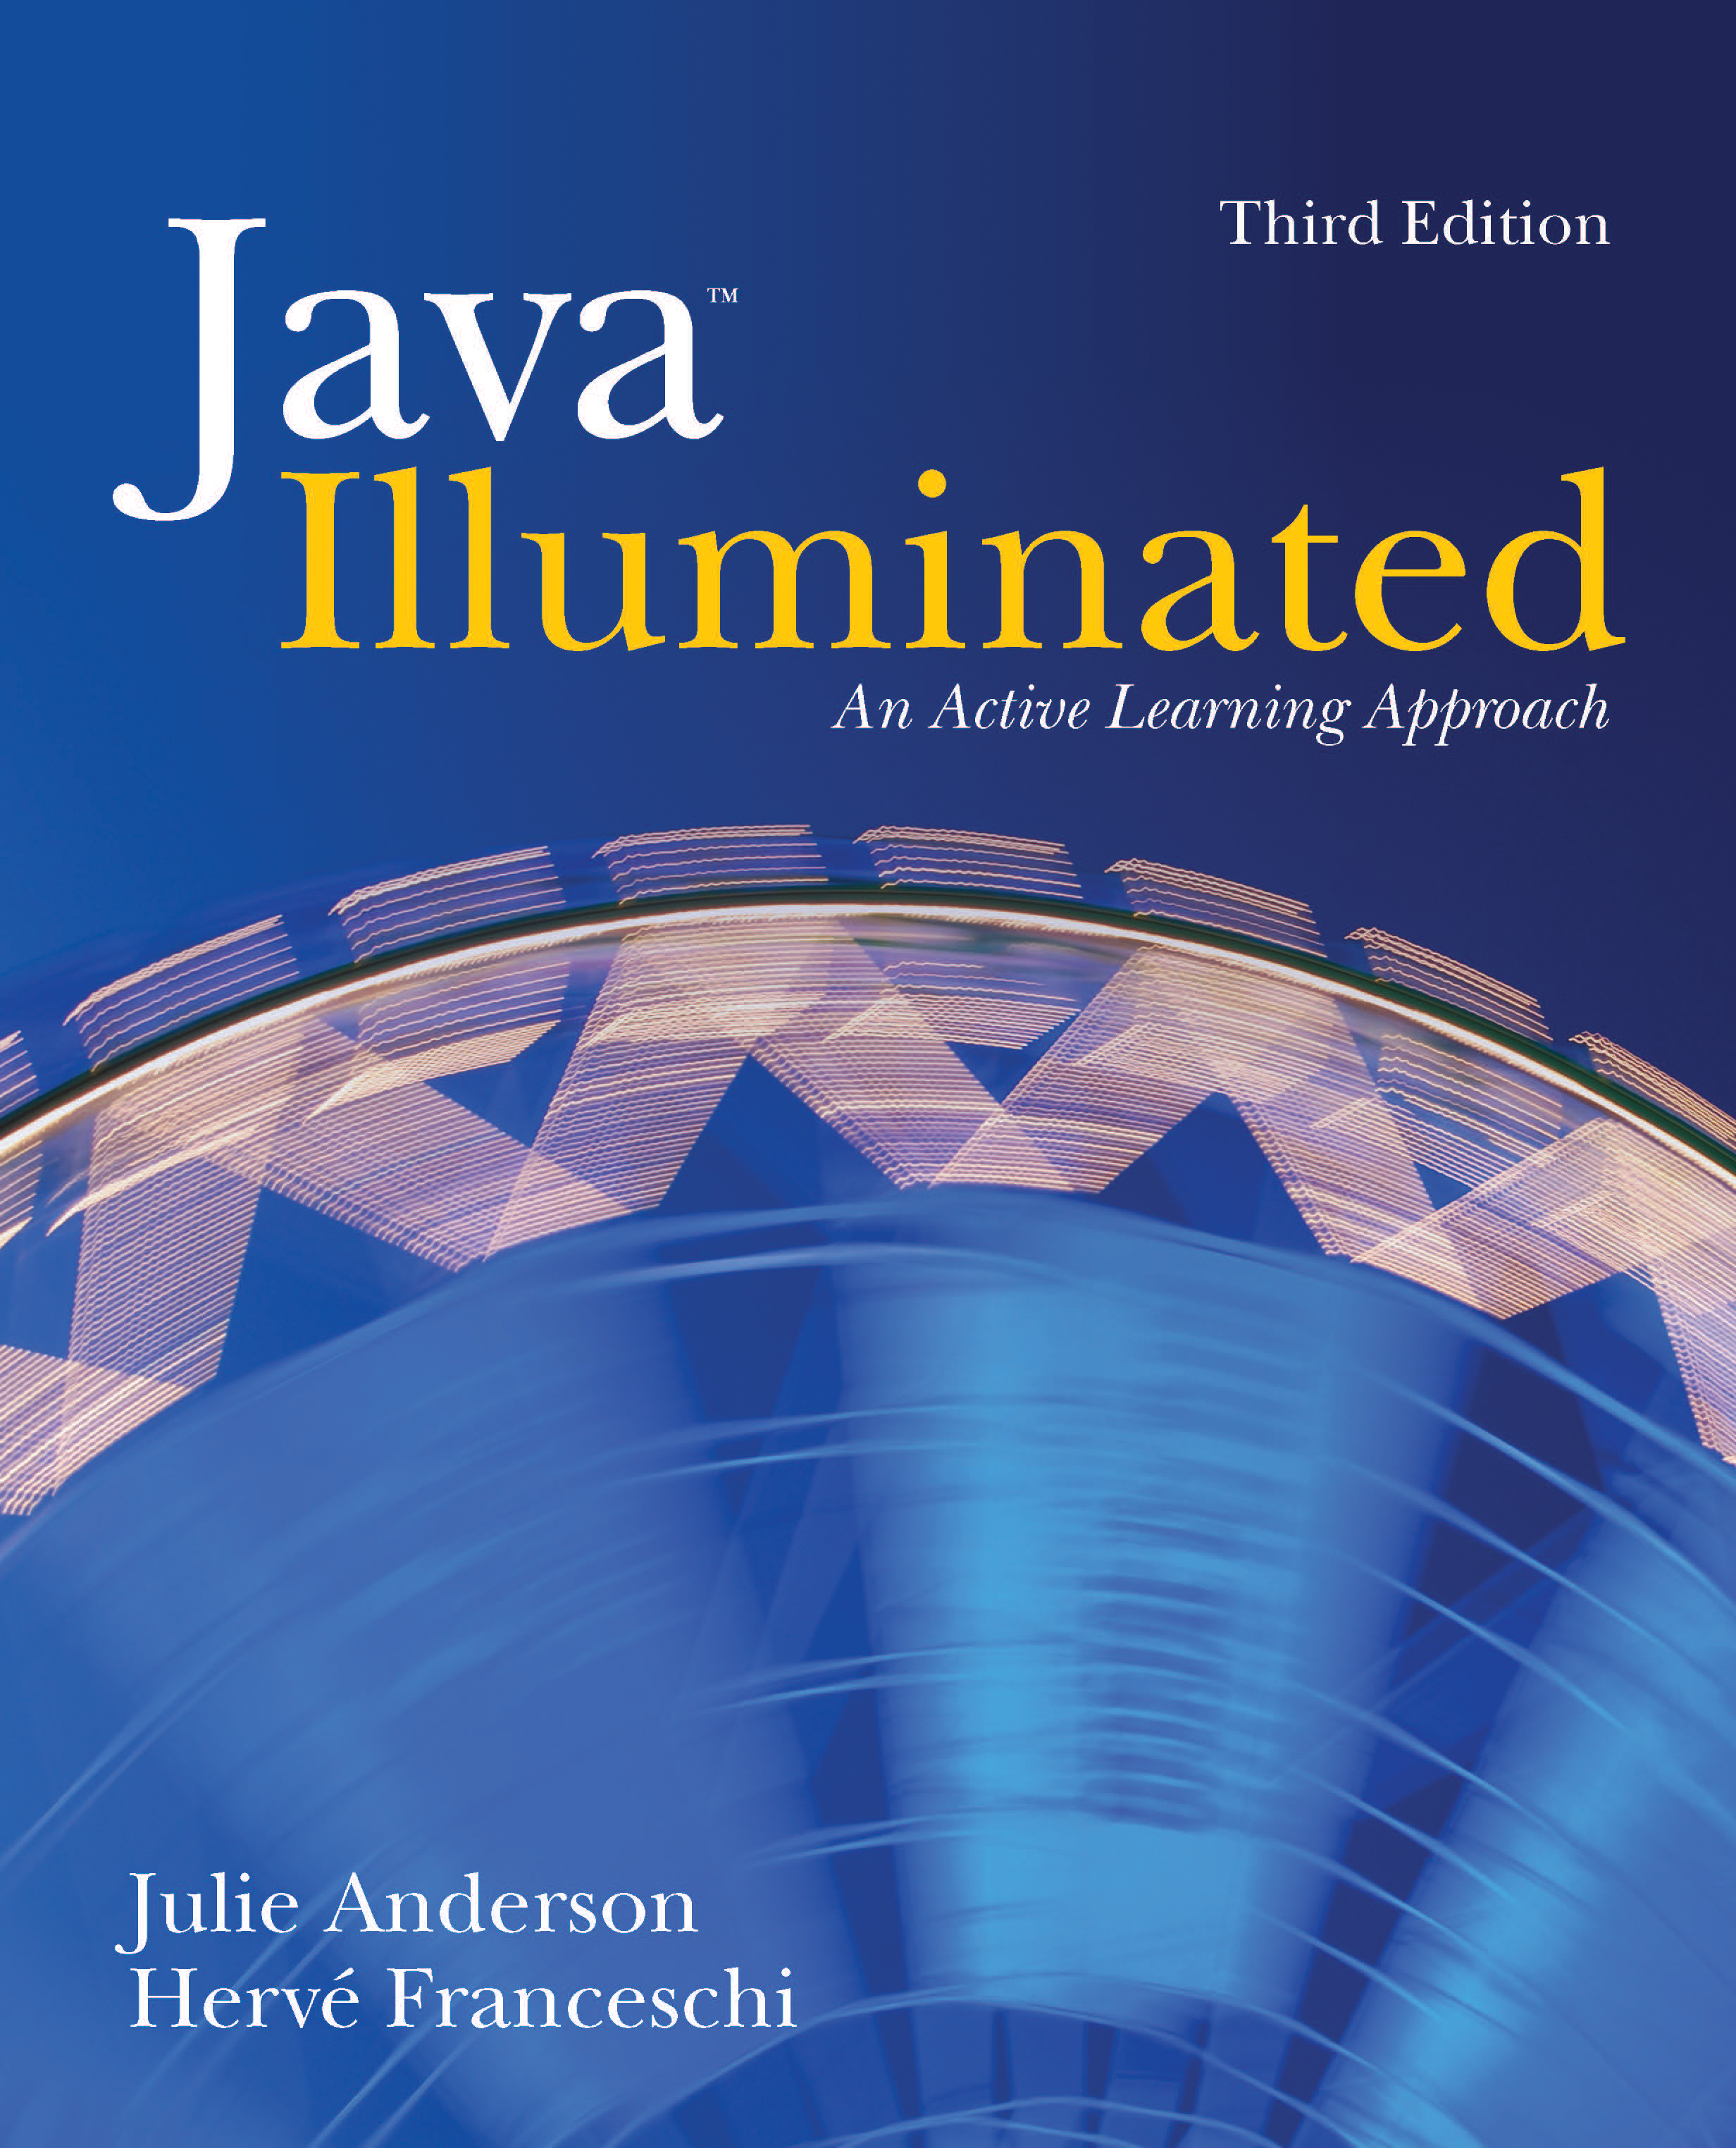 Cover page java illuminated 3rd edition book with safari you learn the way you learn best get unlimited access to videos live online training learning paths books interactive tutorials and more baditri Gallery